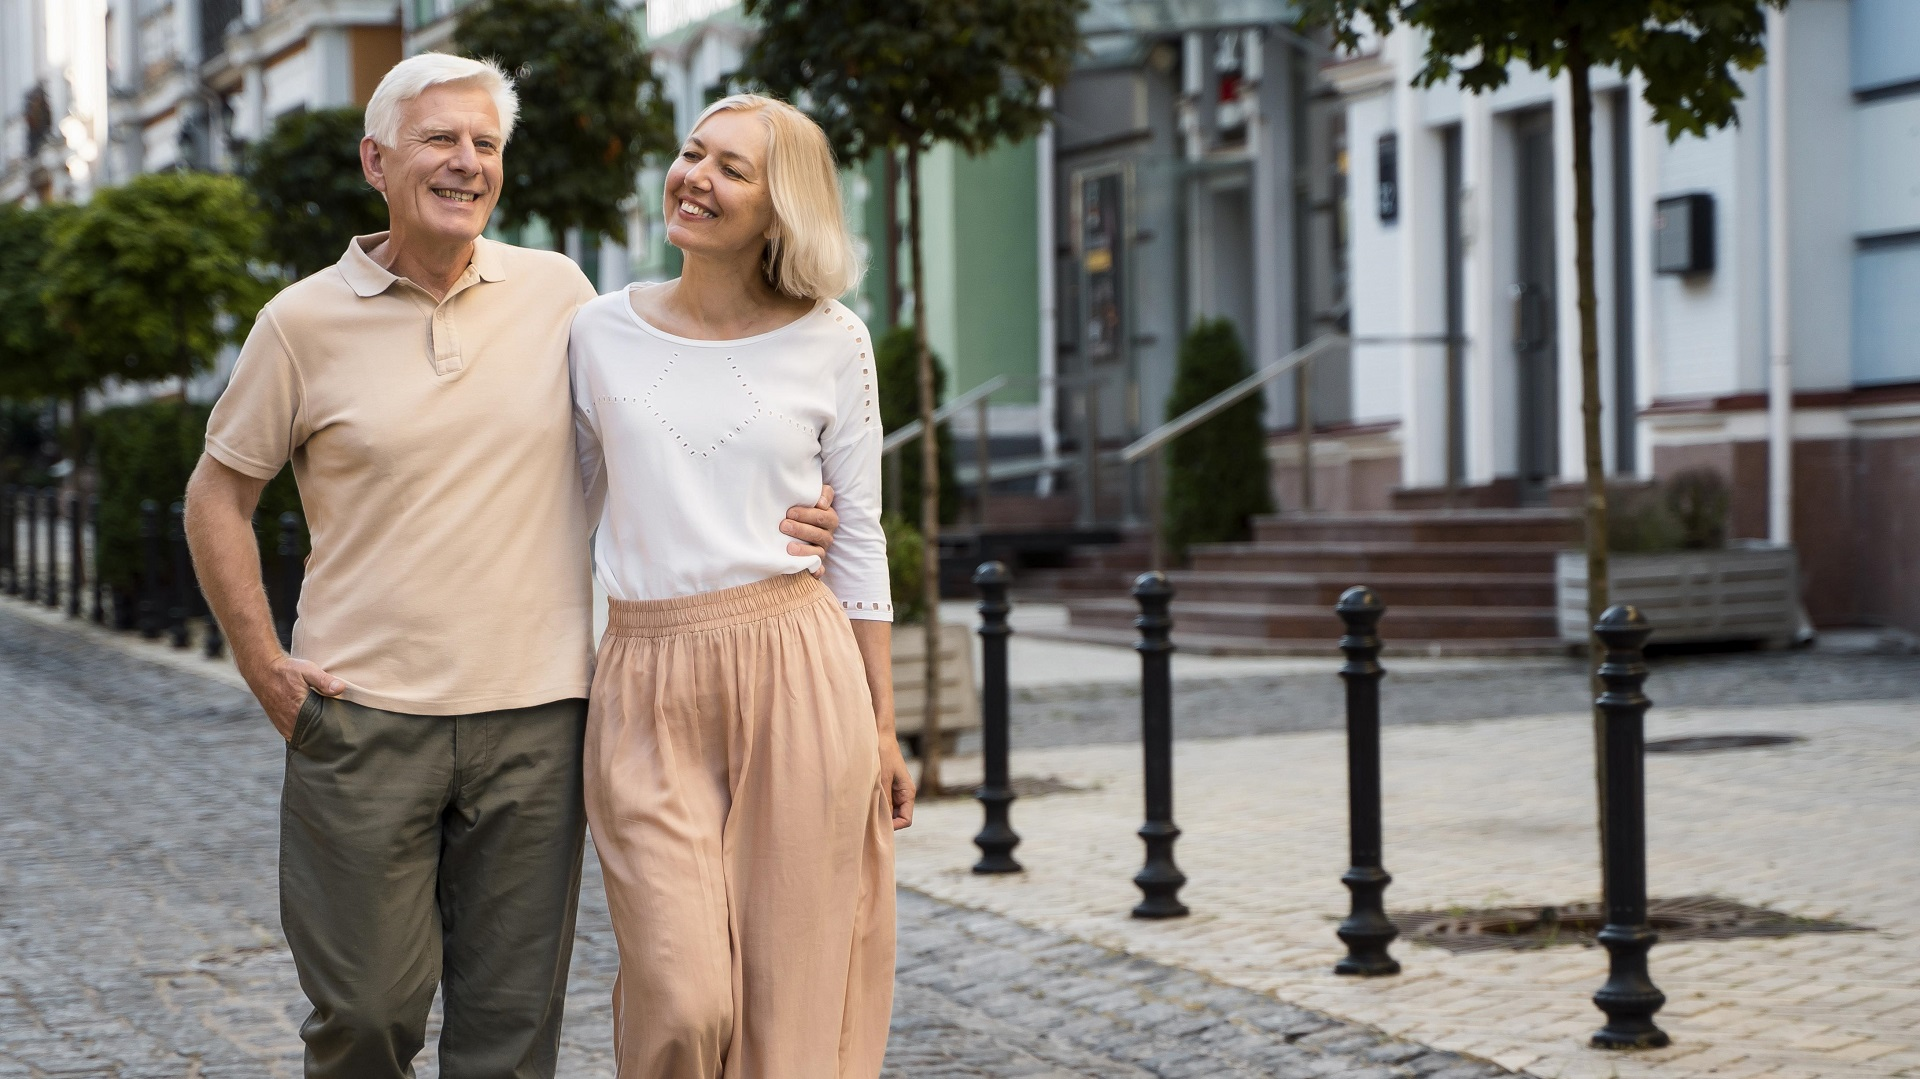 Senior couple taking a walk in the city